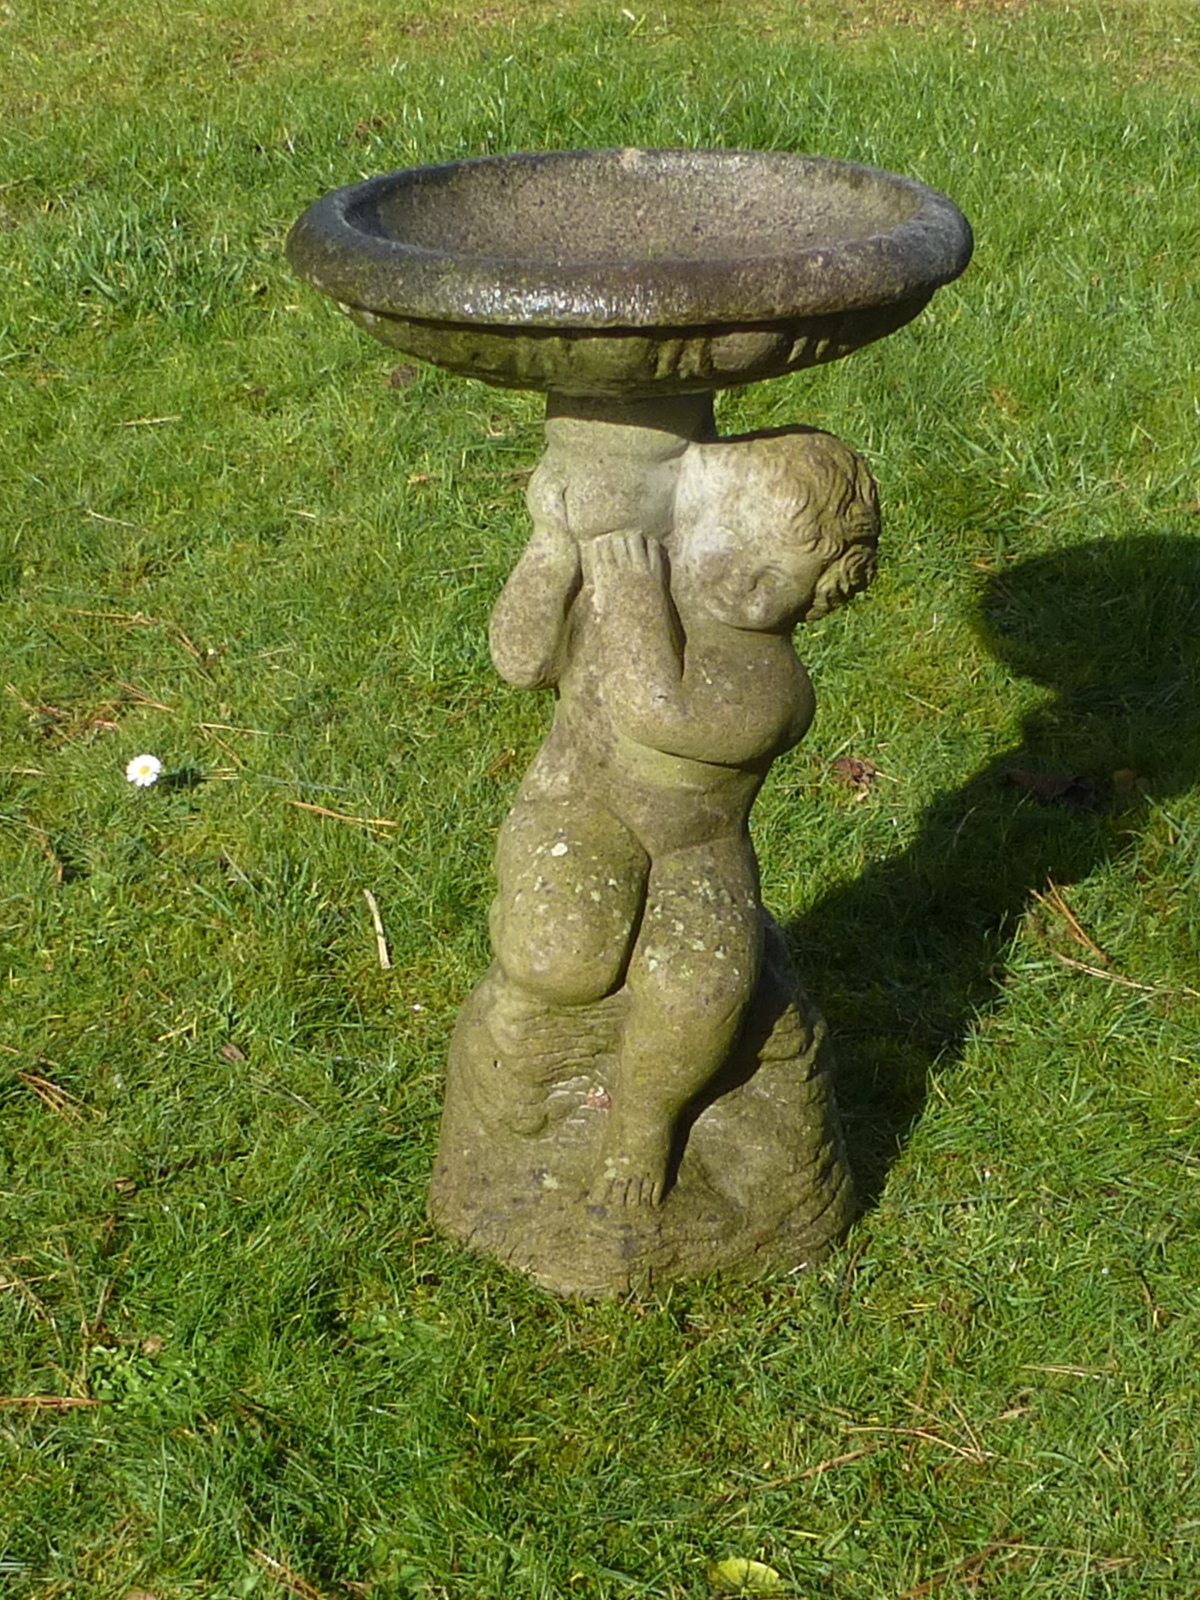 Redruth Cornwall Garden Statue Garden Ornament cast stone cherub bird bath used pre-owned secondhand